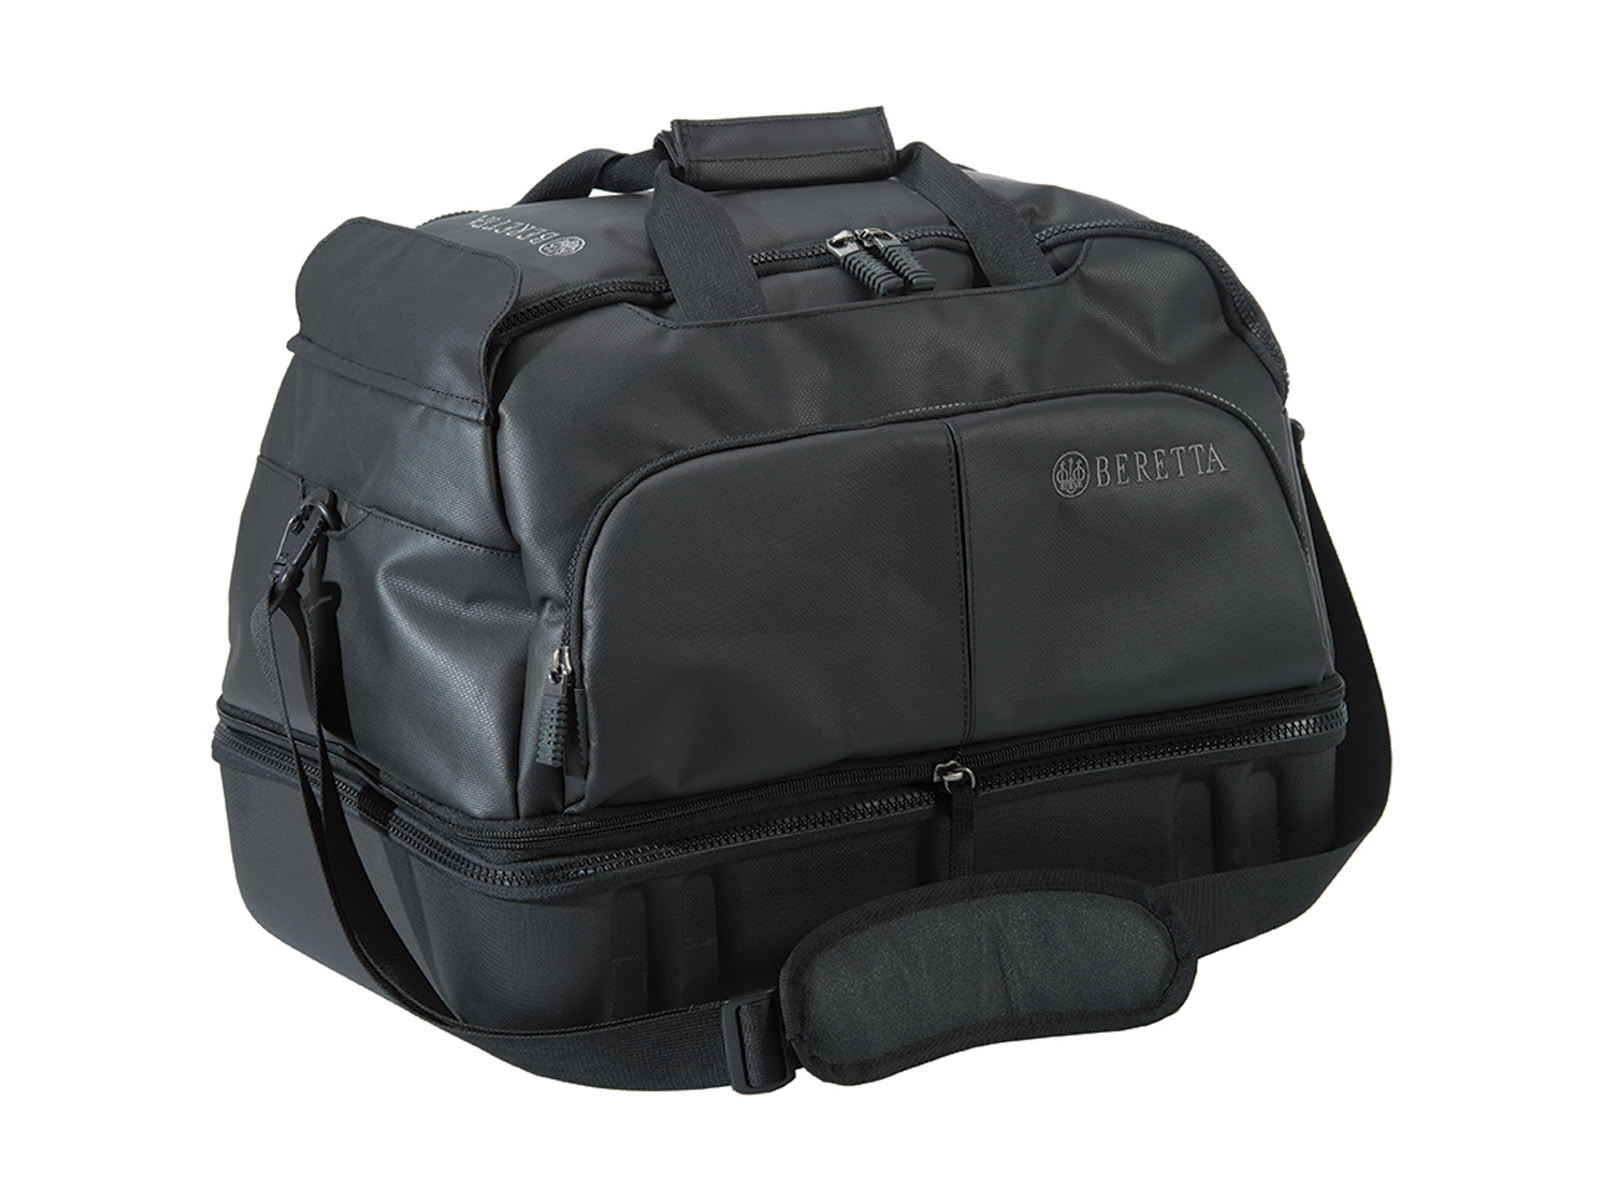 Beretta Transformer Cartridge Bag